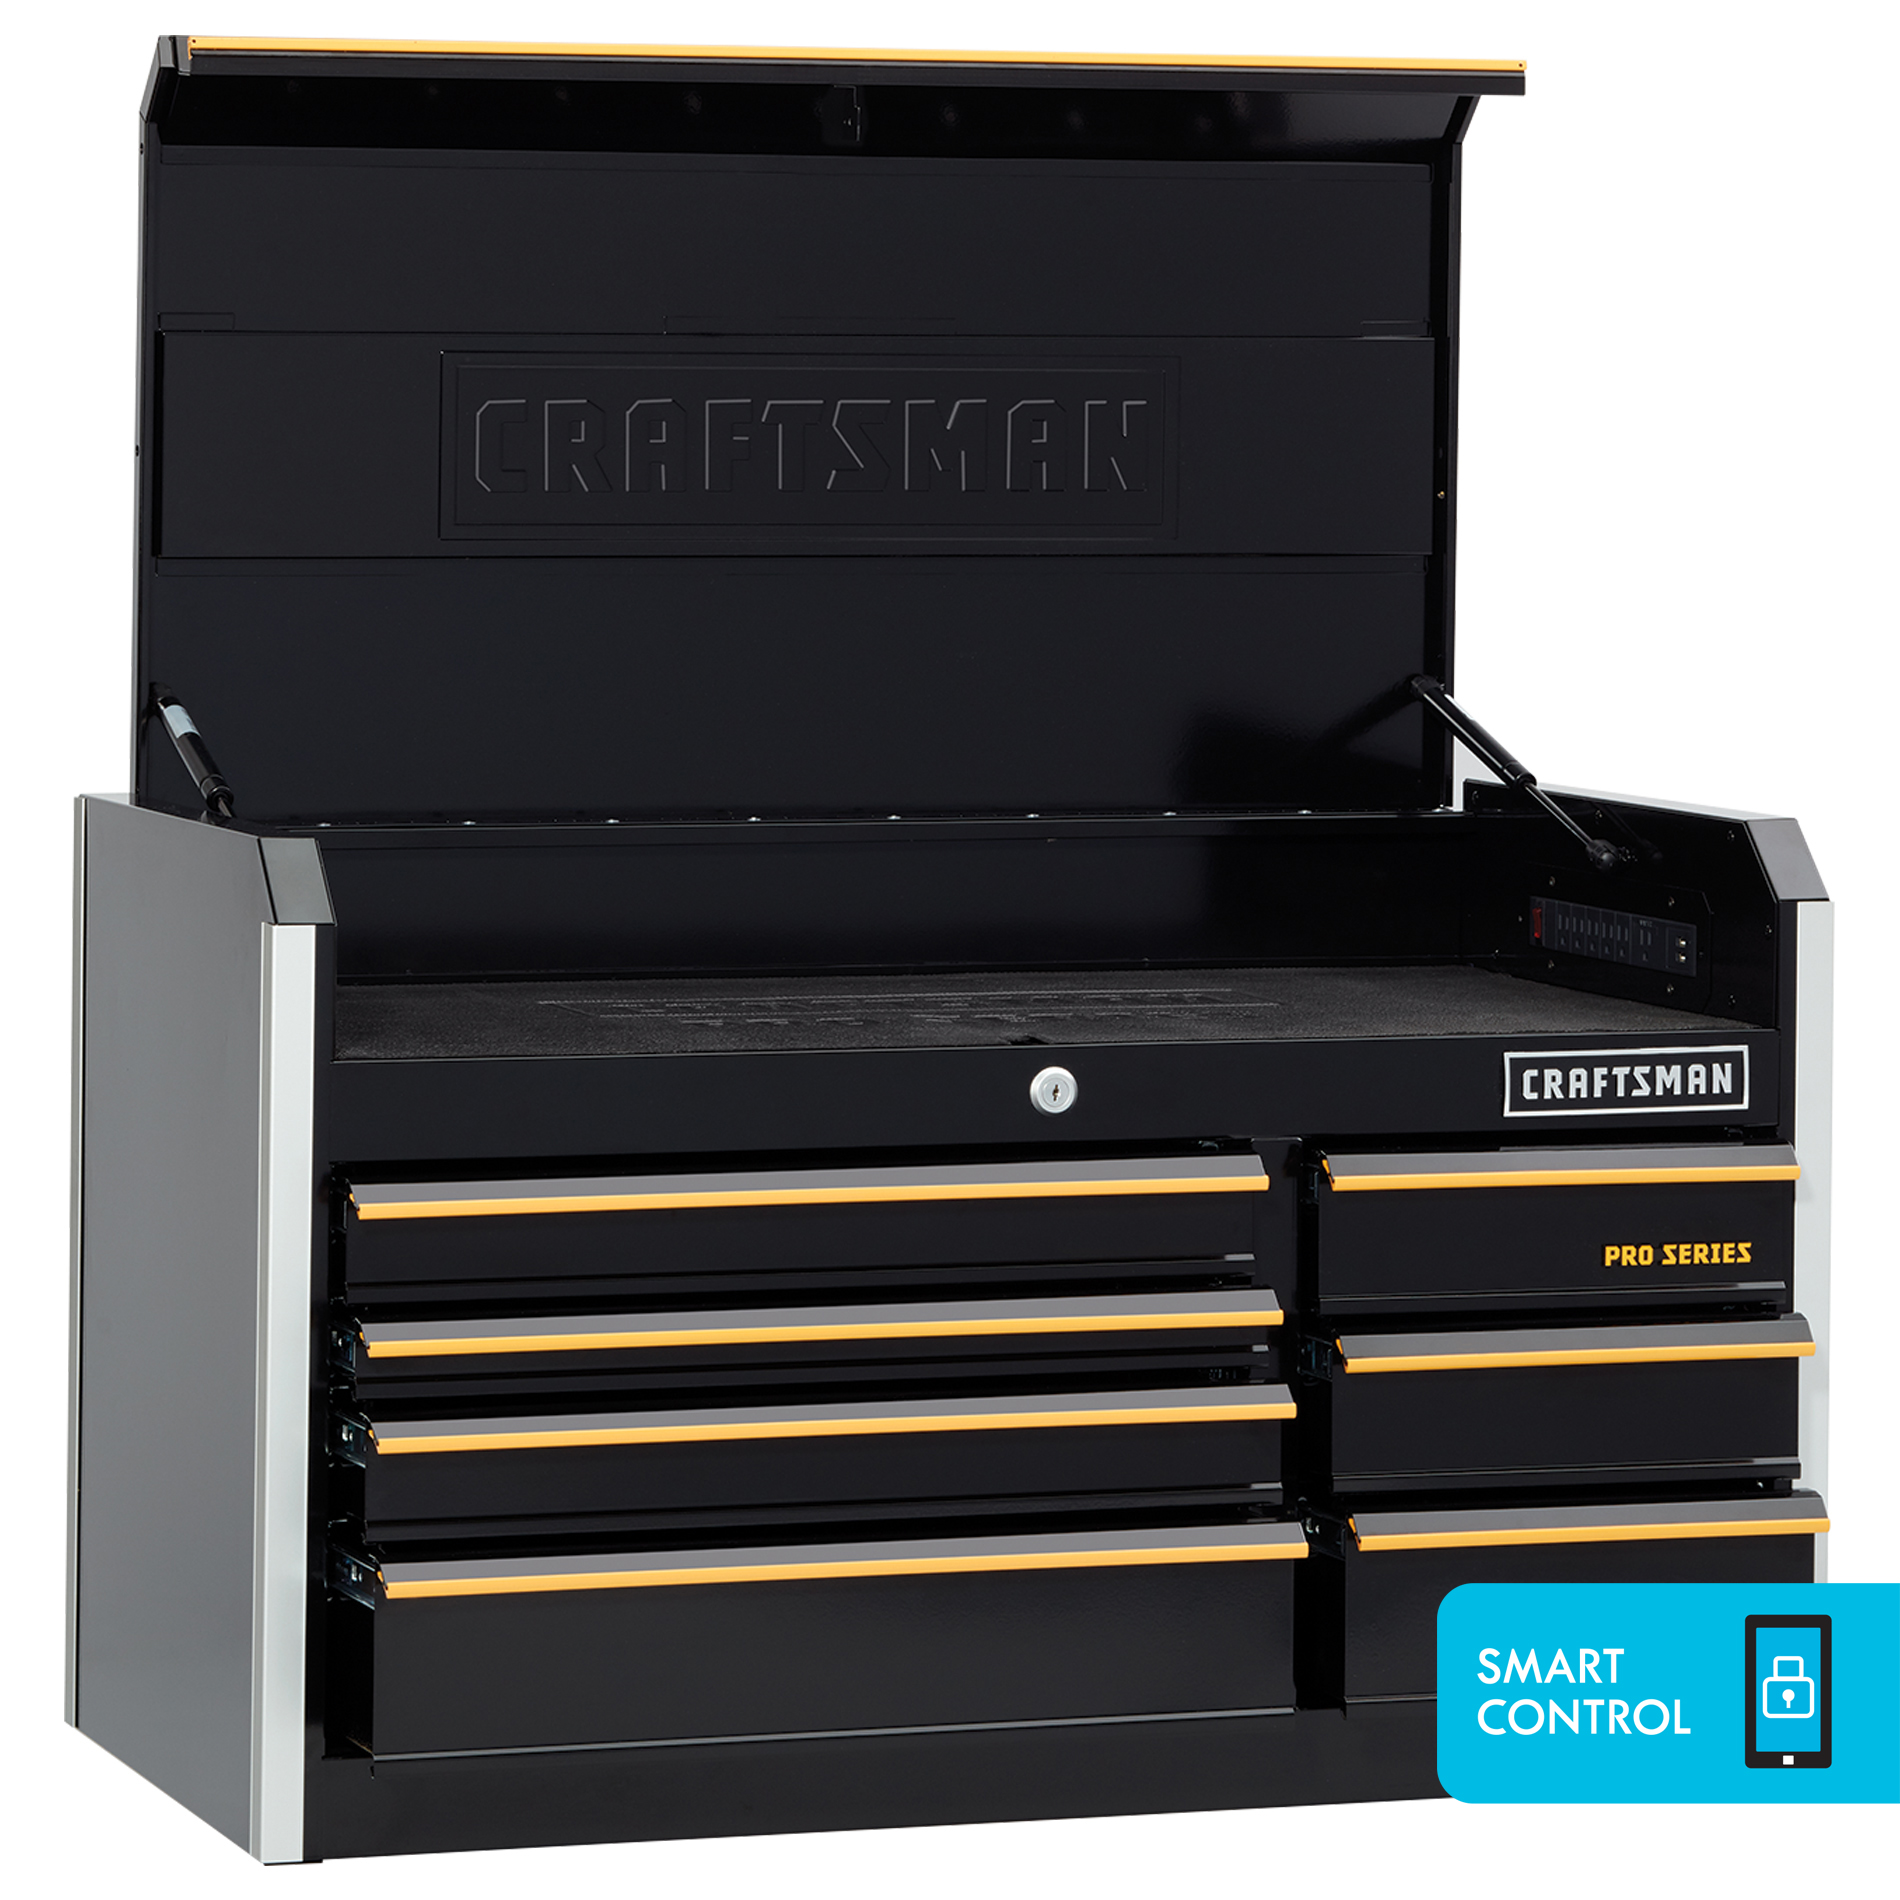 Craftsman ProSeries 41-Inch Wide 7-Drawer Top Chest - Black